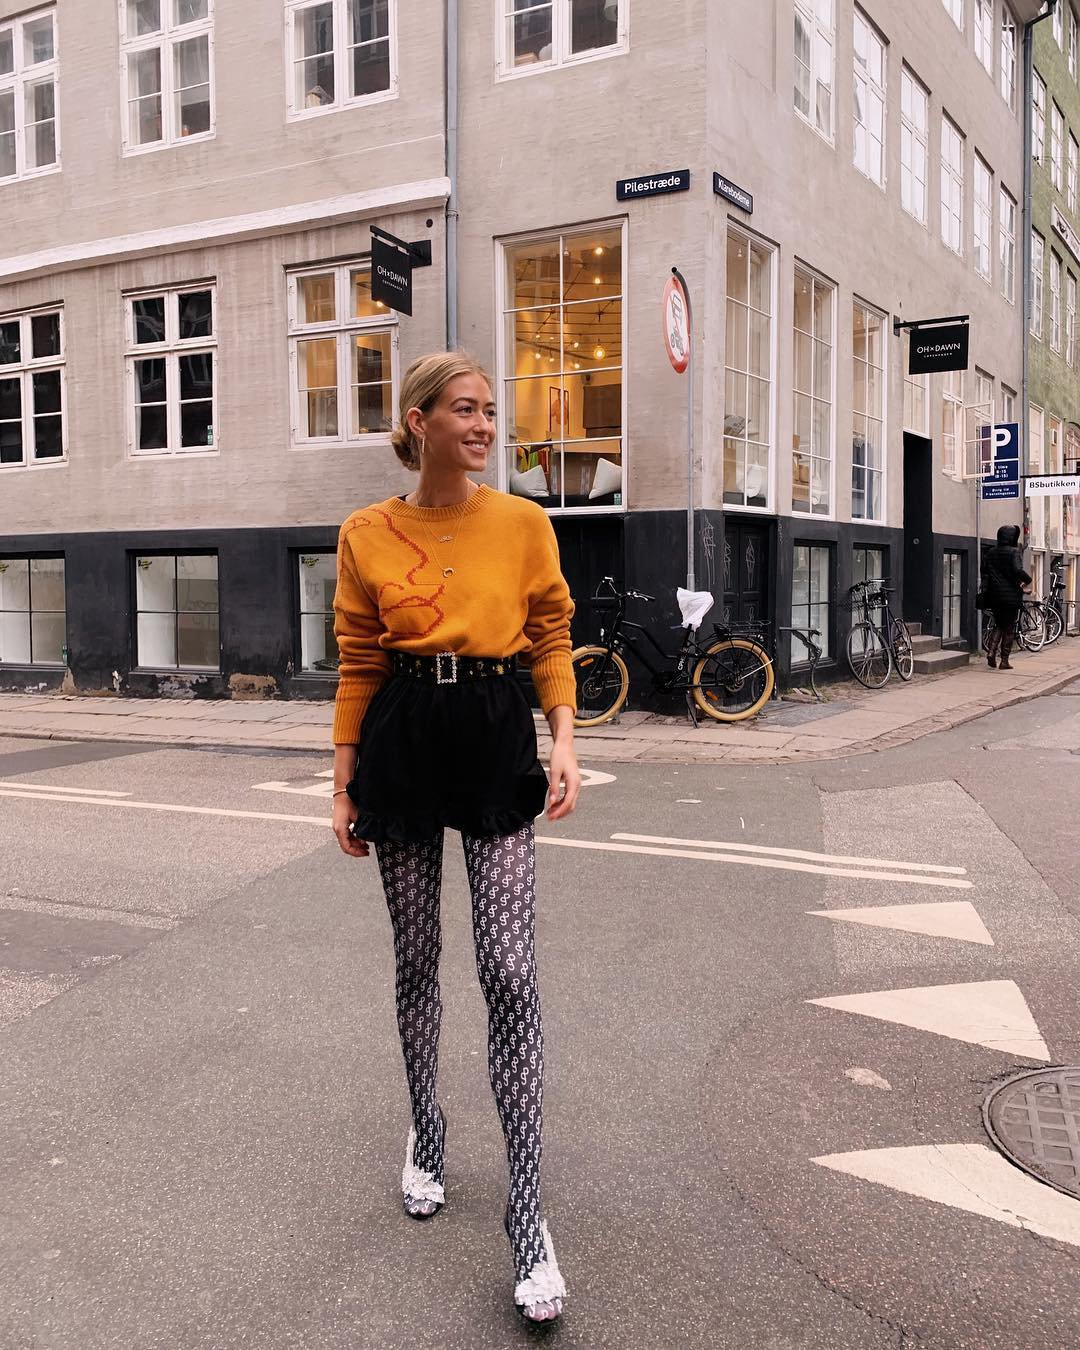 It girl - Suéter - Tons terrosos - Inverno - Street Style